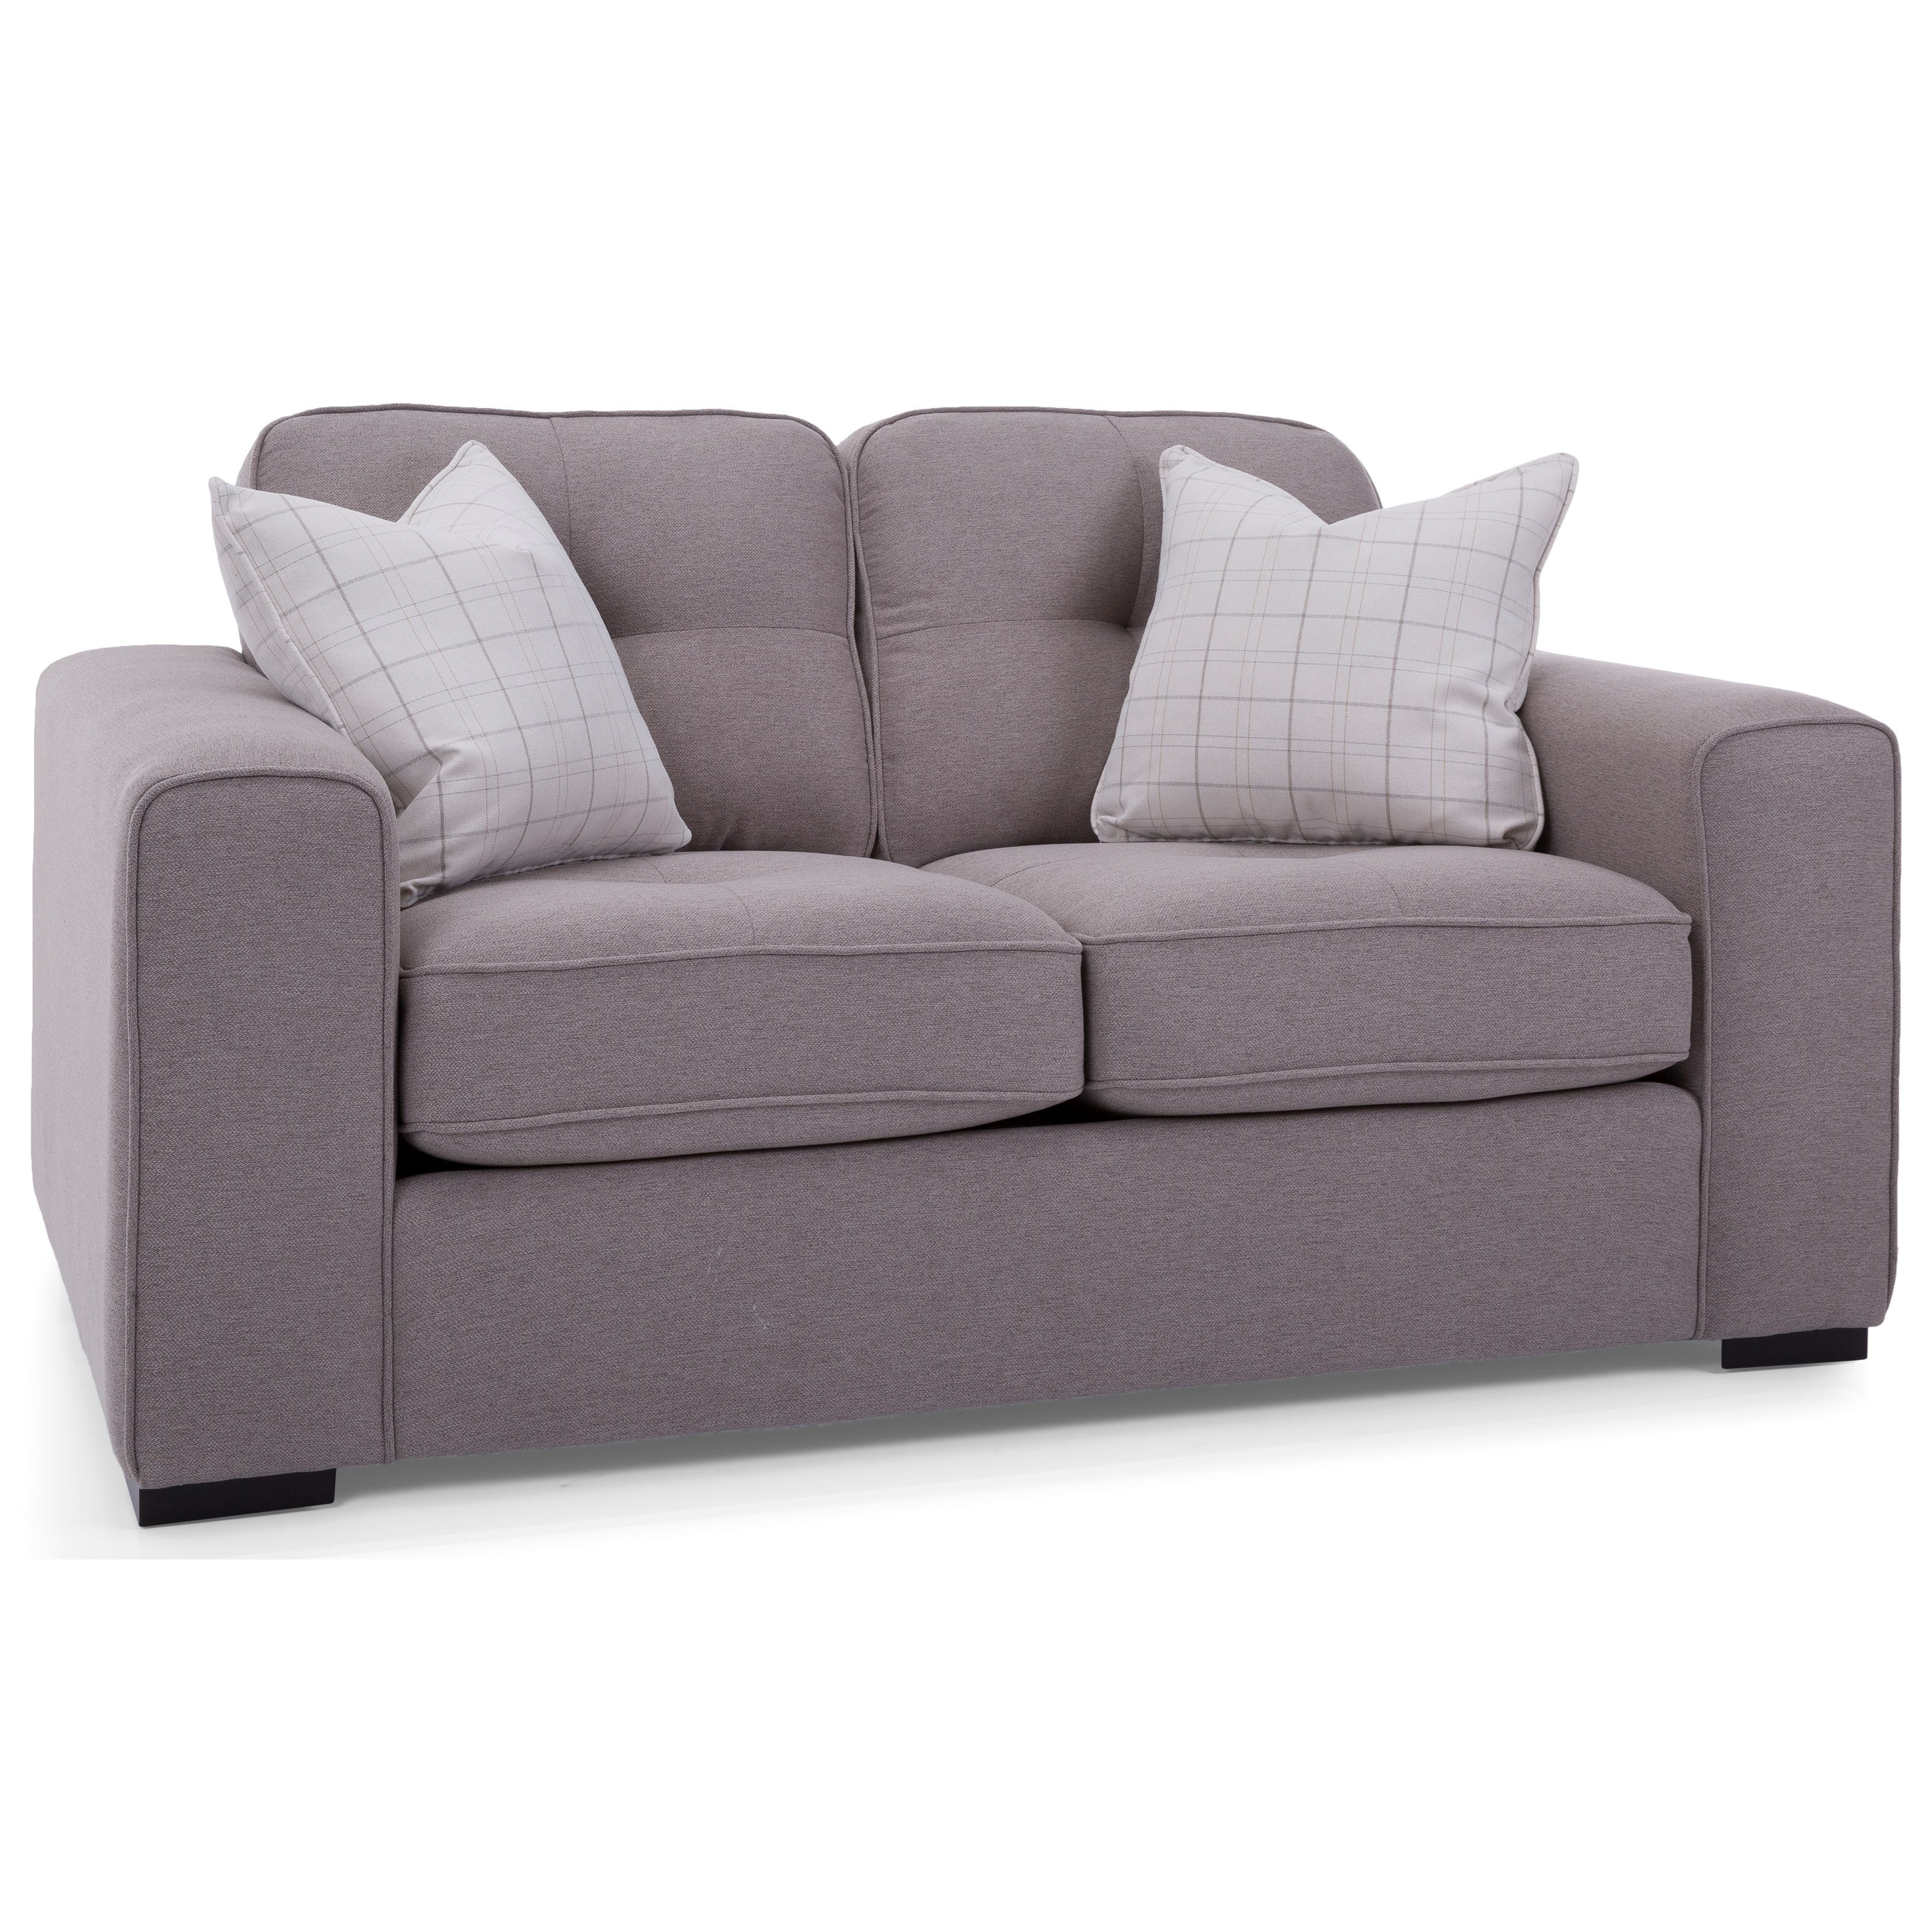 2990 Loveseat by Decor-Rest at Upper Room Home Furnishings